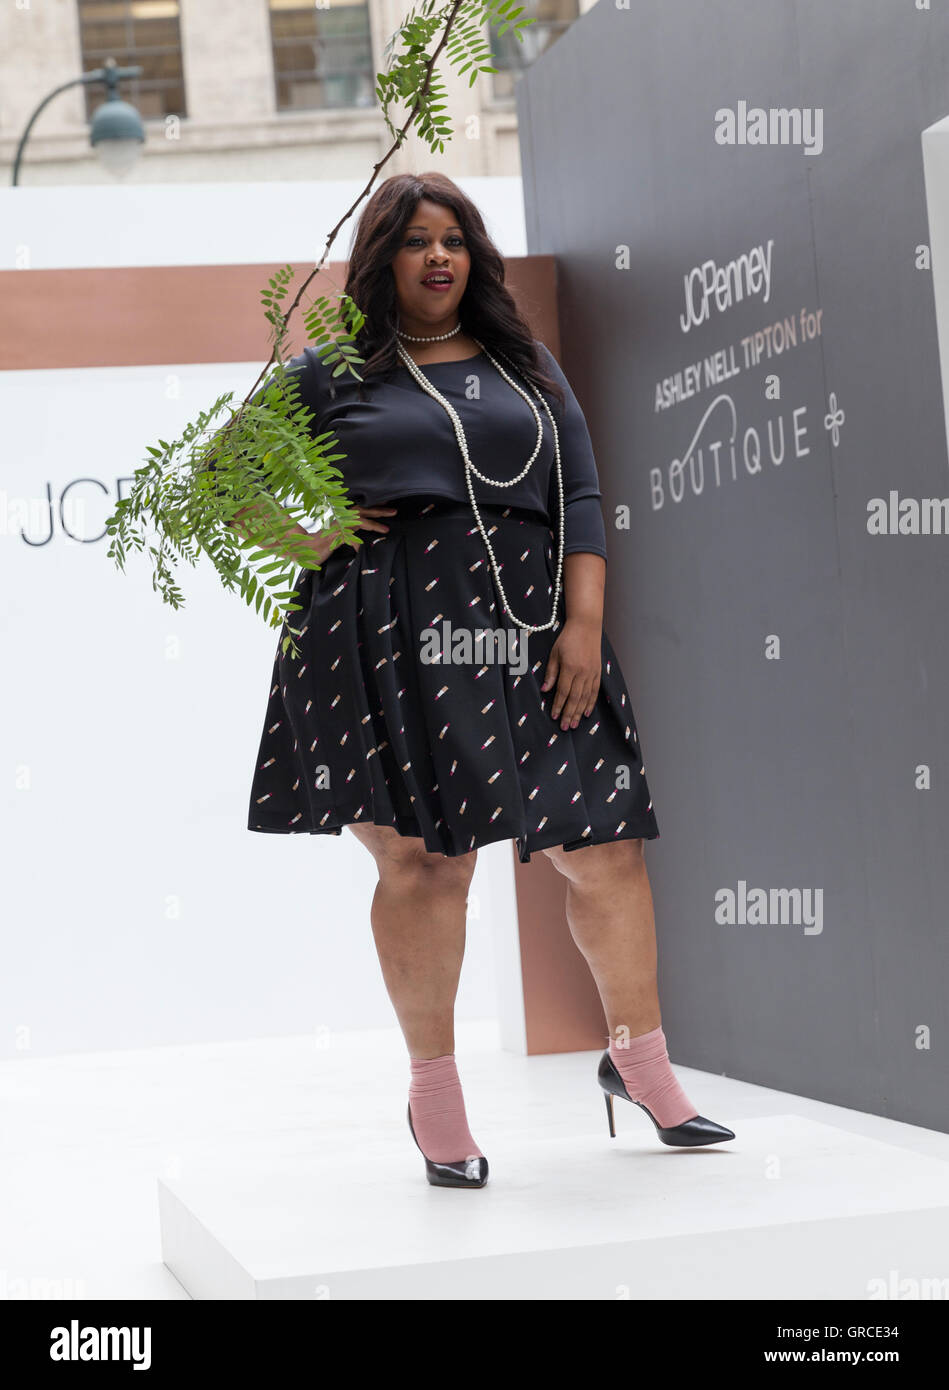 9ed945bf918 Model walks runway for women plus-size collection by Ashley Nell Tipton  presented by JCPenney during New York fashion week ss 2017 at Greeley Square